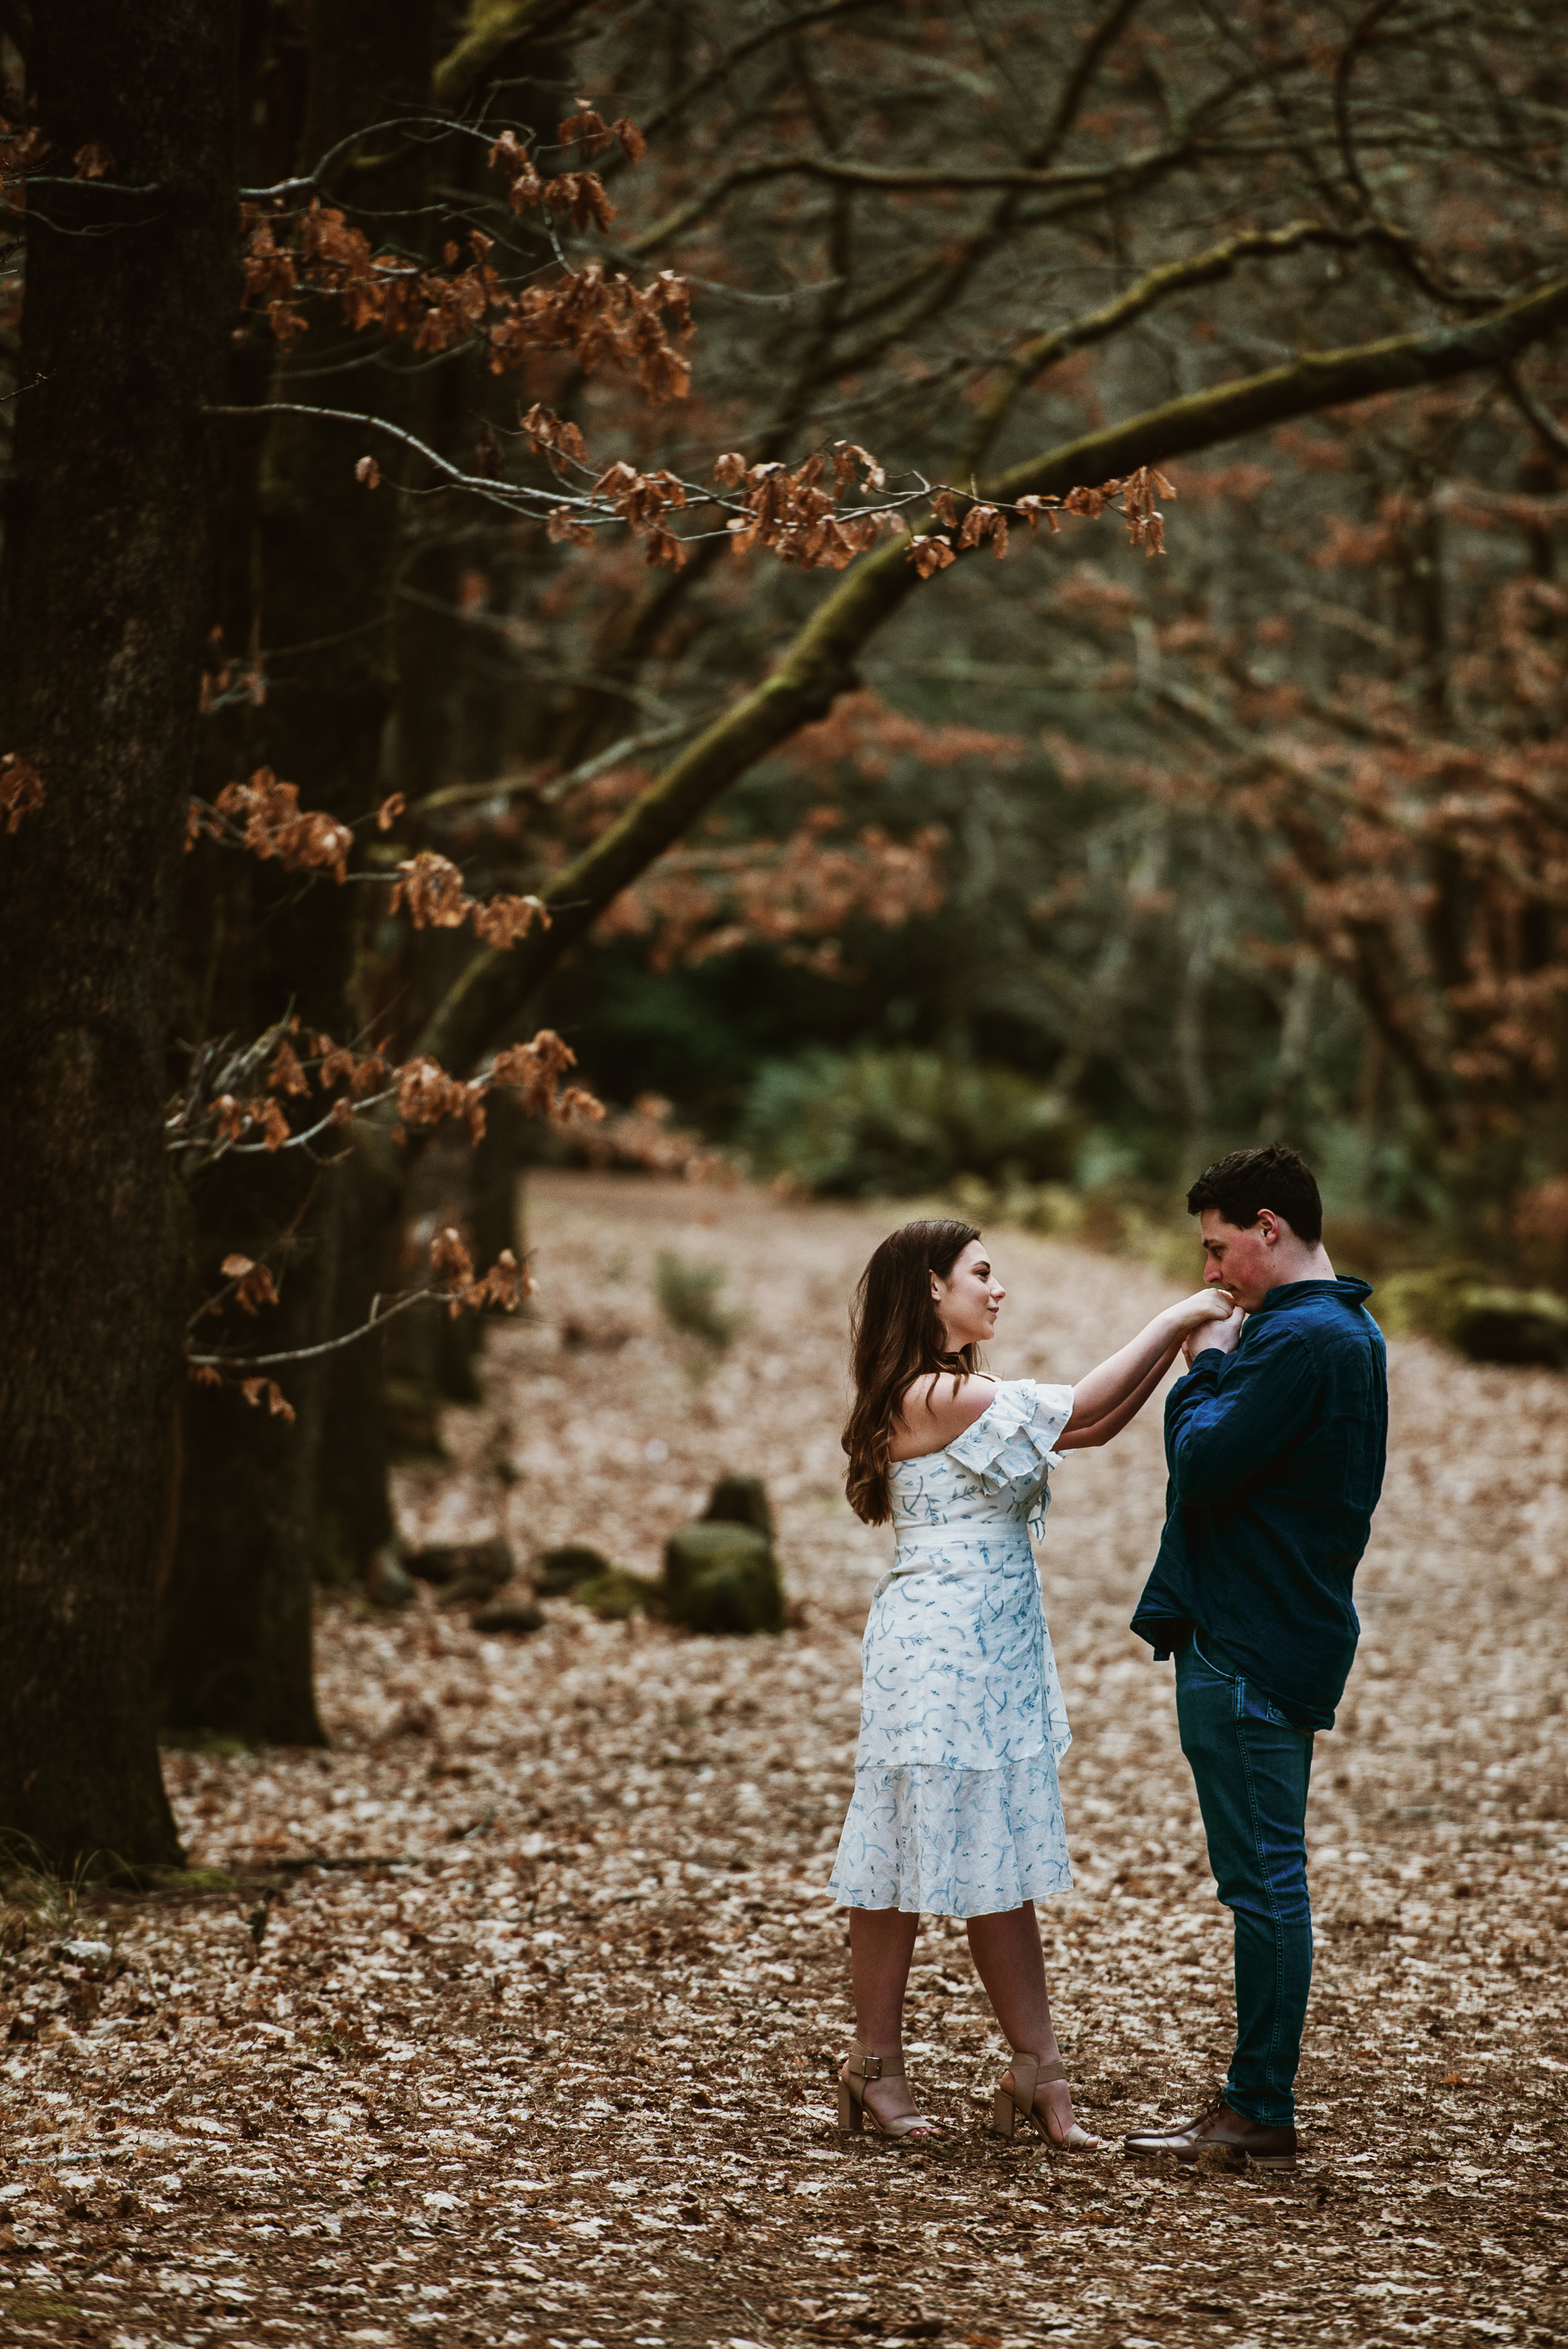 launceston couples photographer-14.jpg